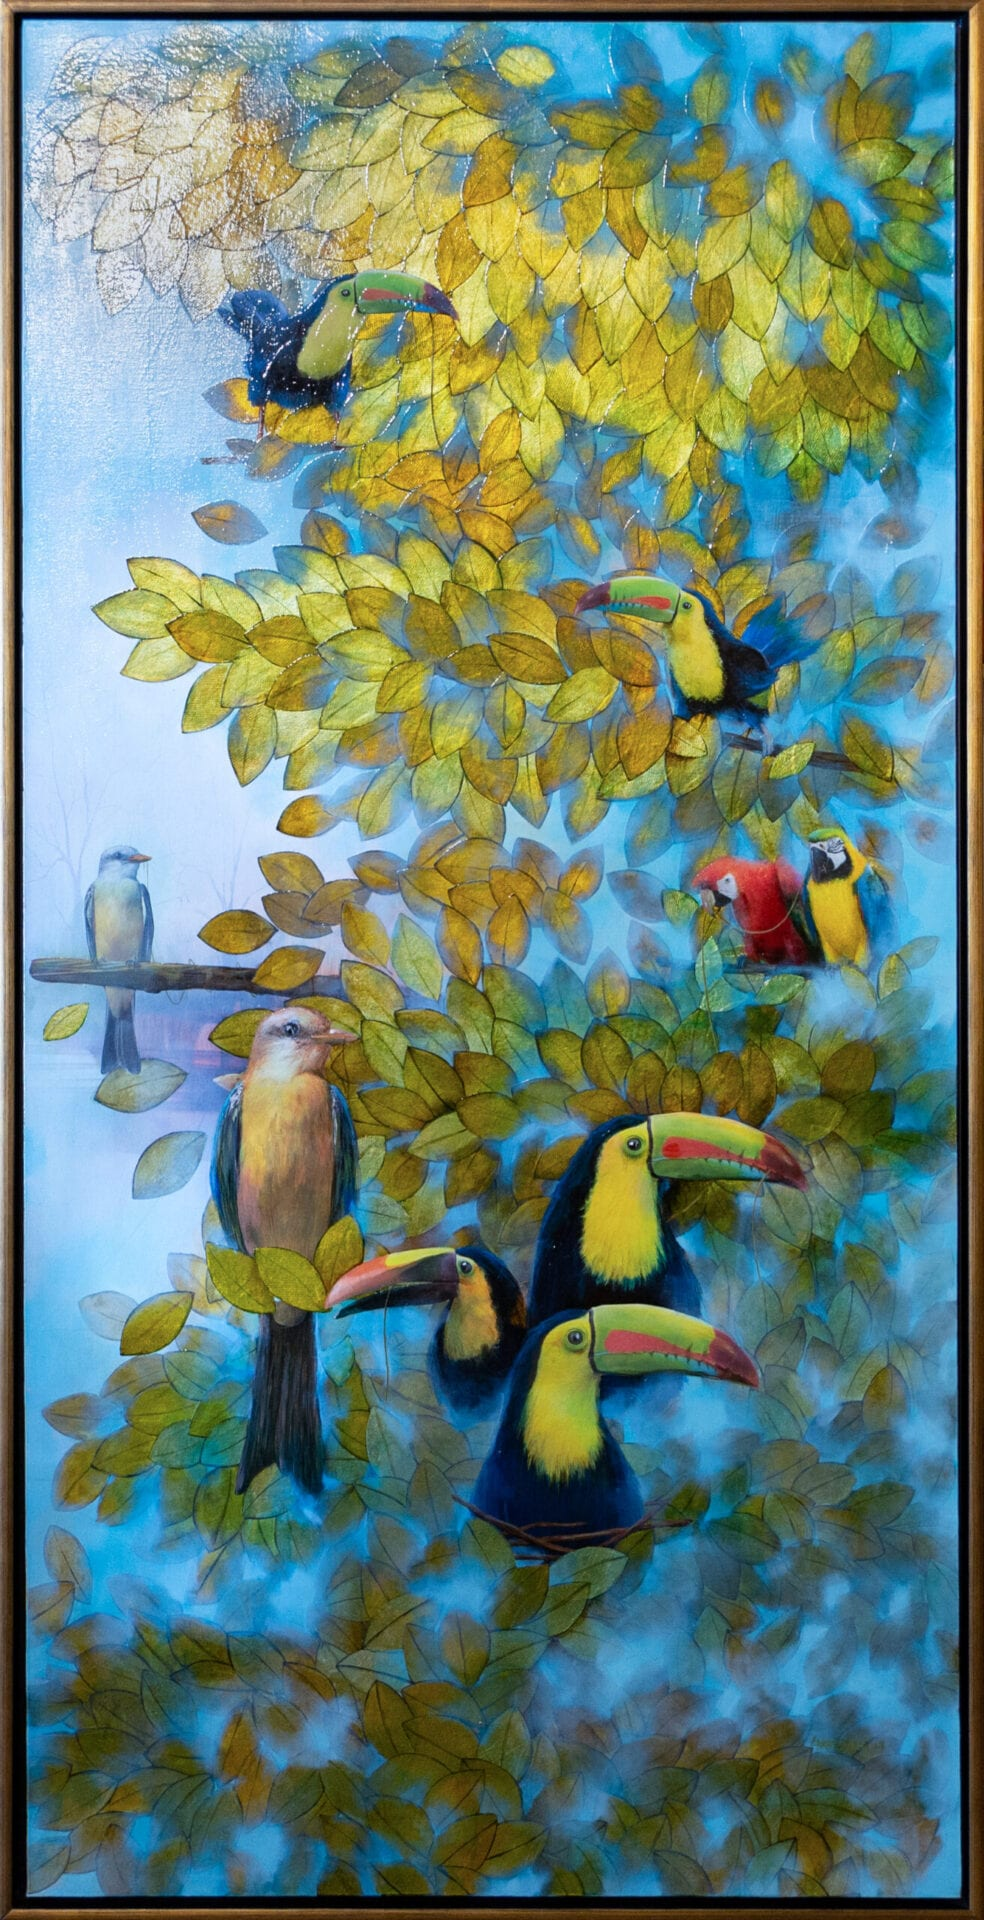 Lost Toucans | Guido Garaycochea | Oil/Mixed Media on Canvas | 72 x 36""